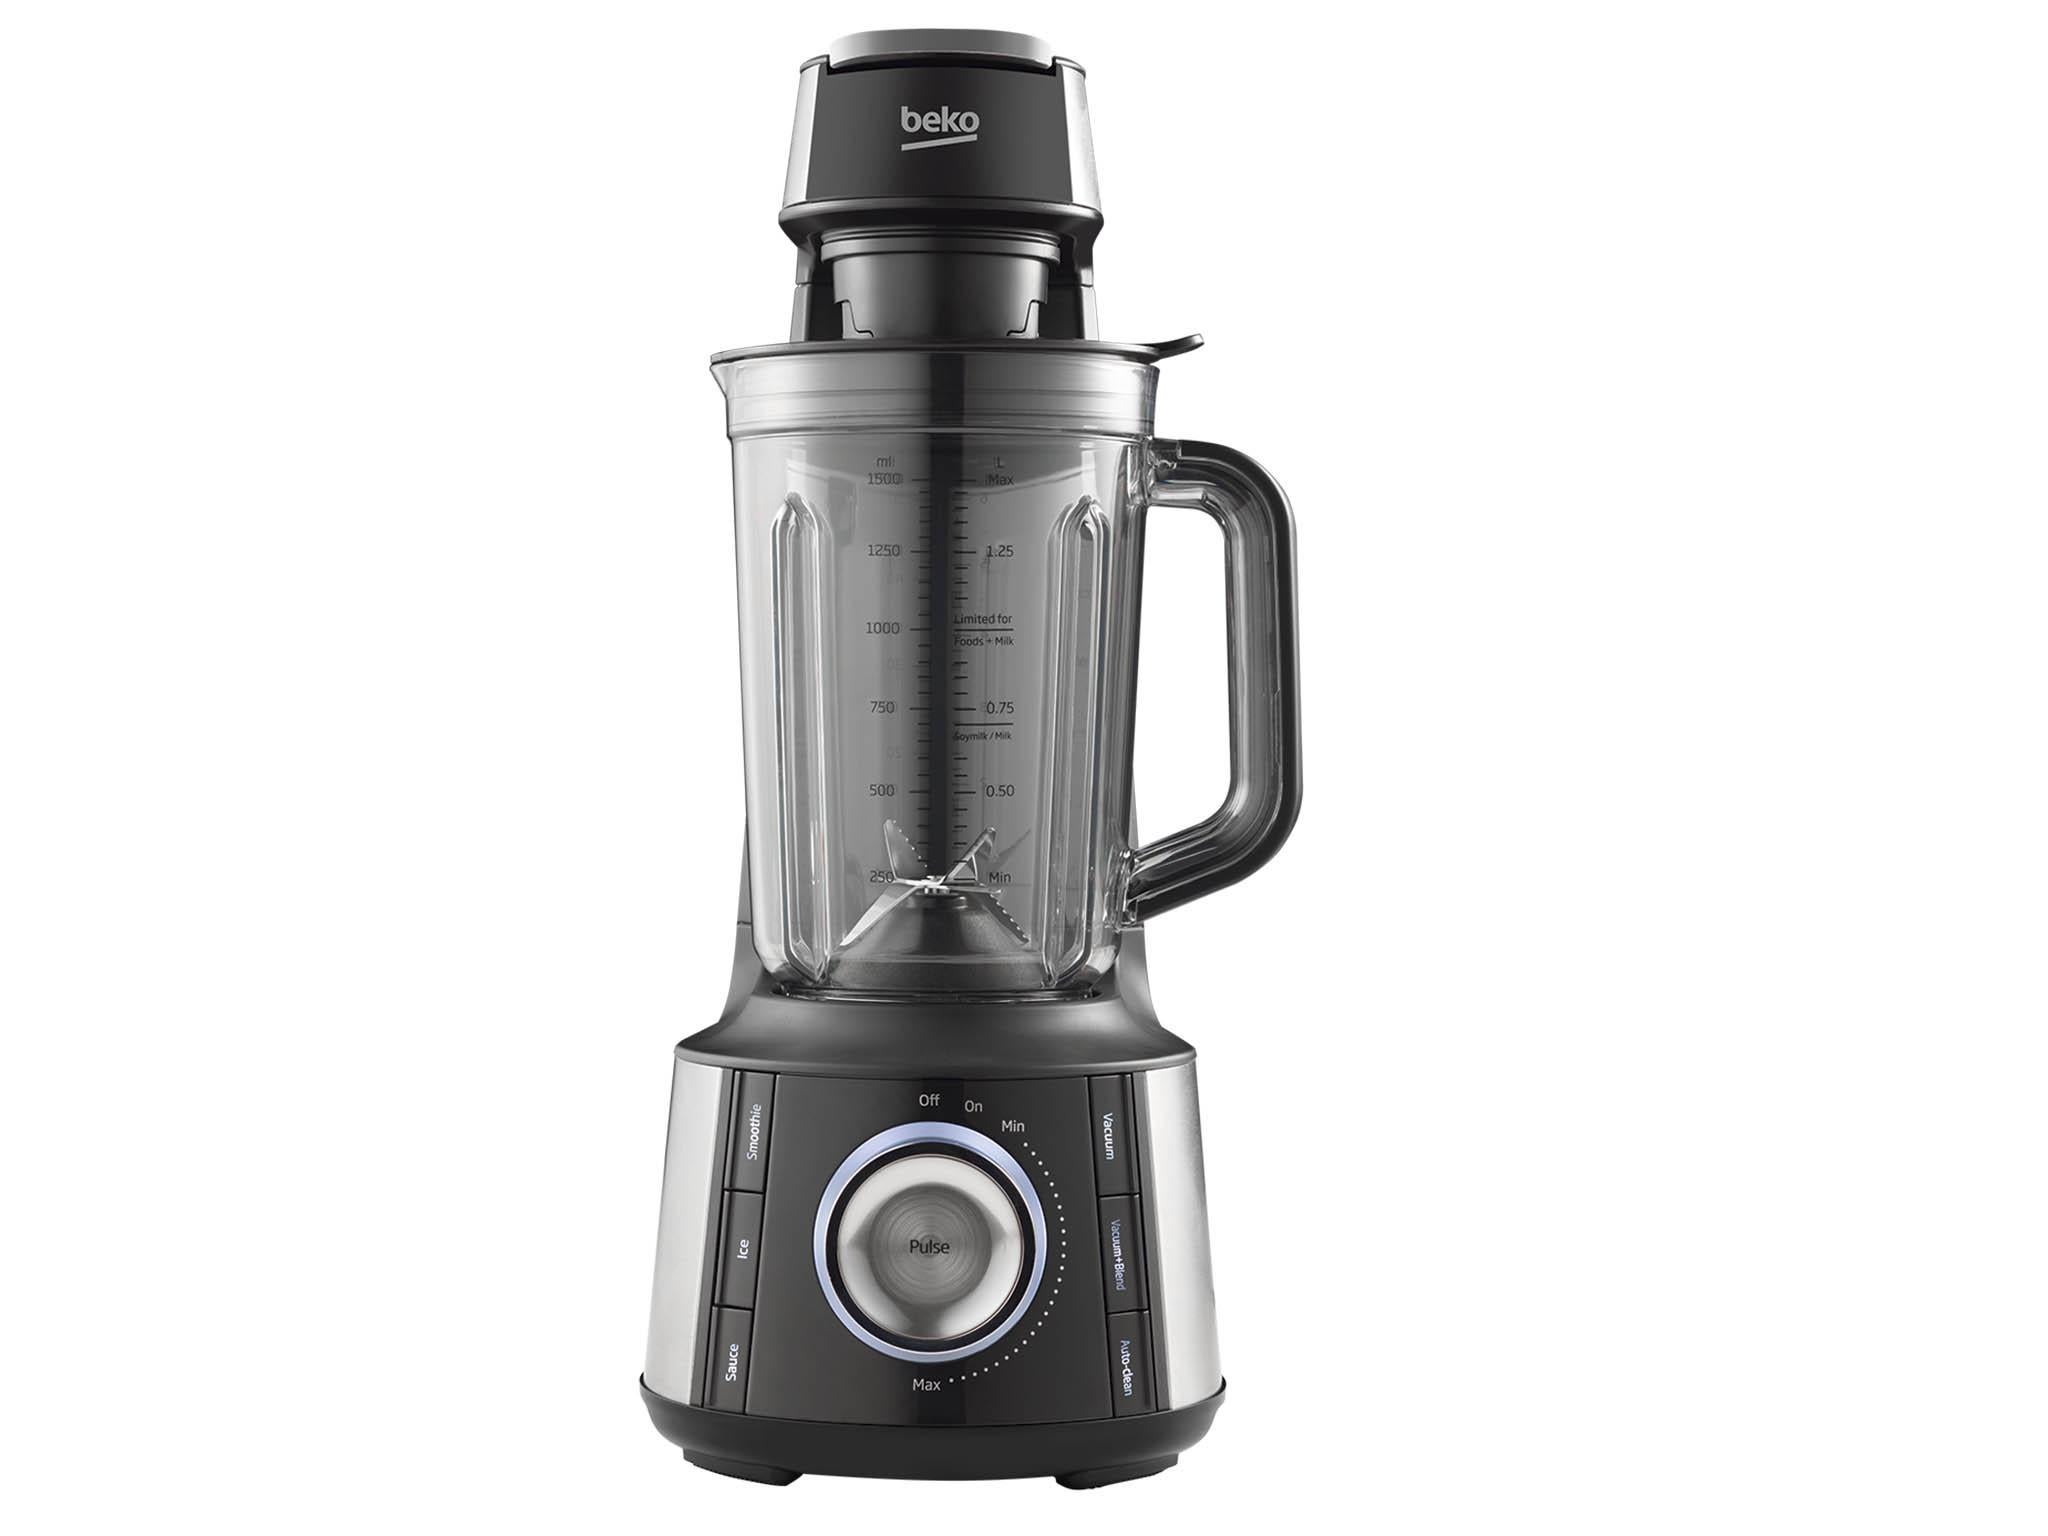 10 Best Jug Blenders The Independent